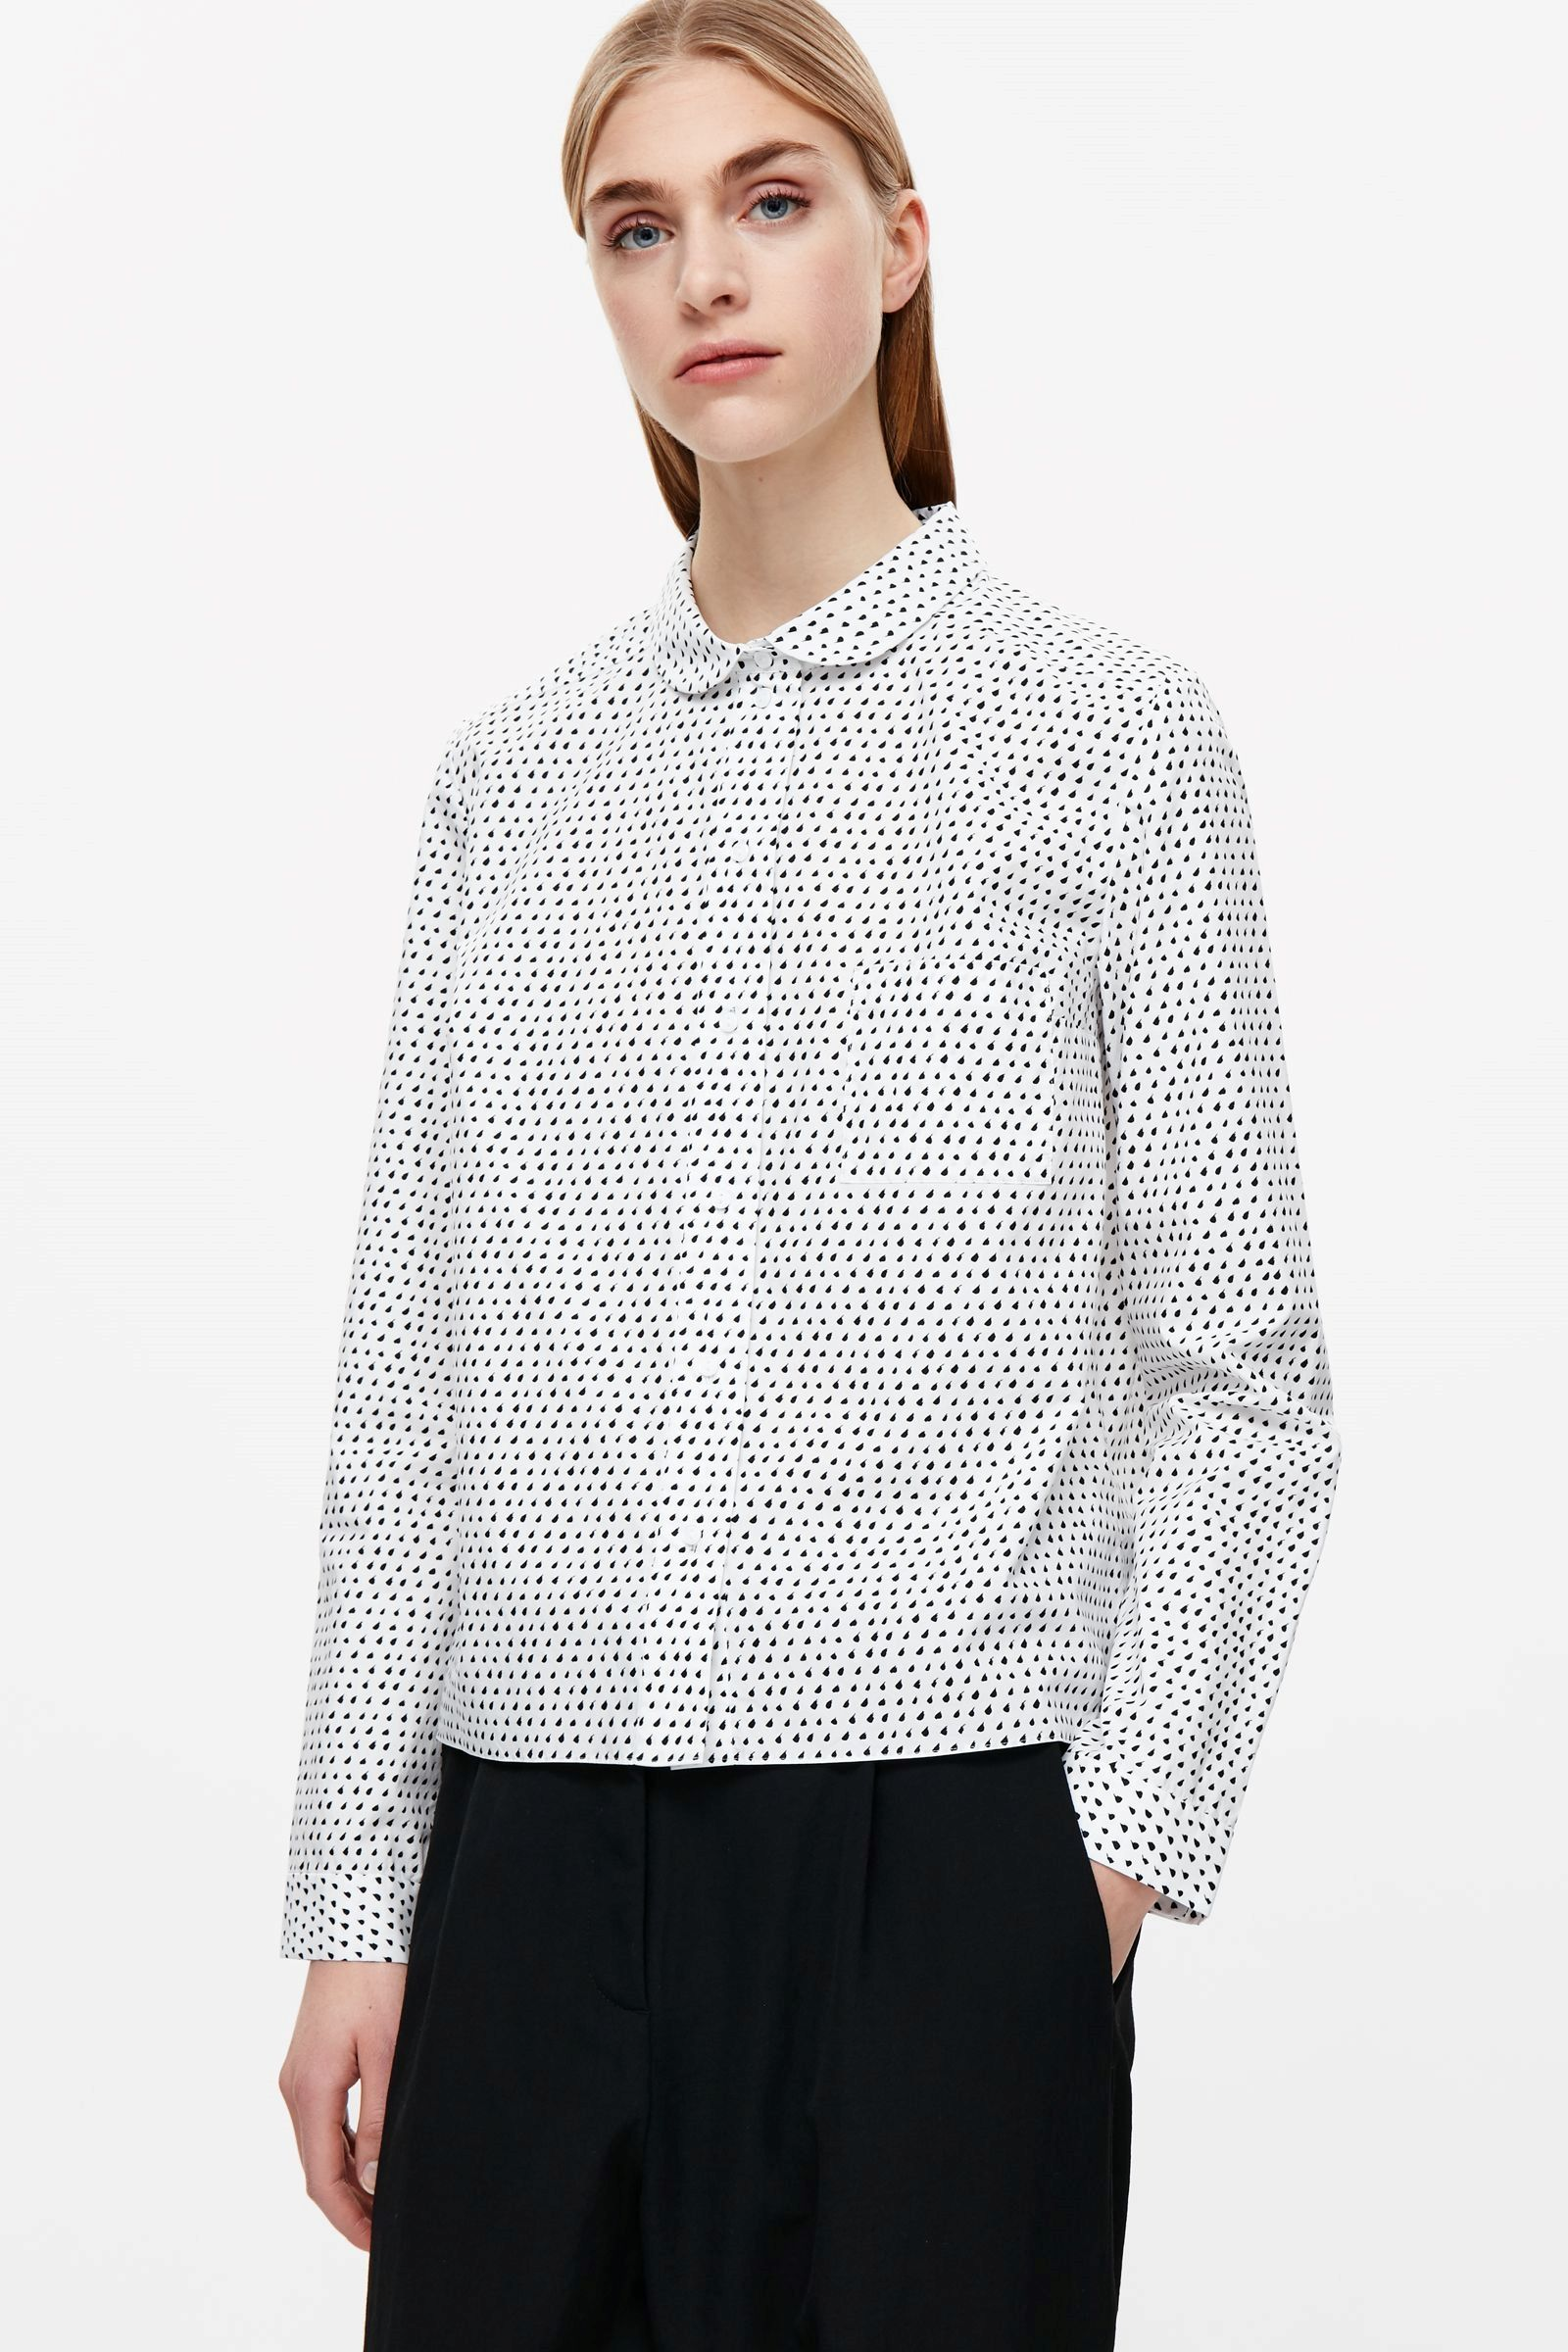 Cos image 18 of roundcollar shirt in white with images